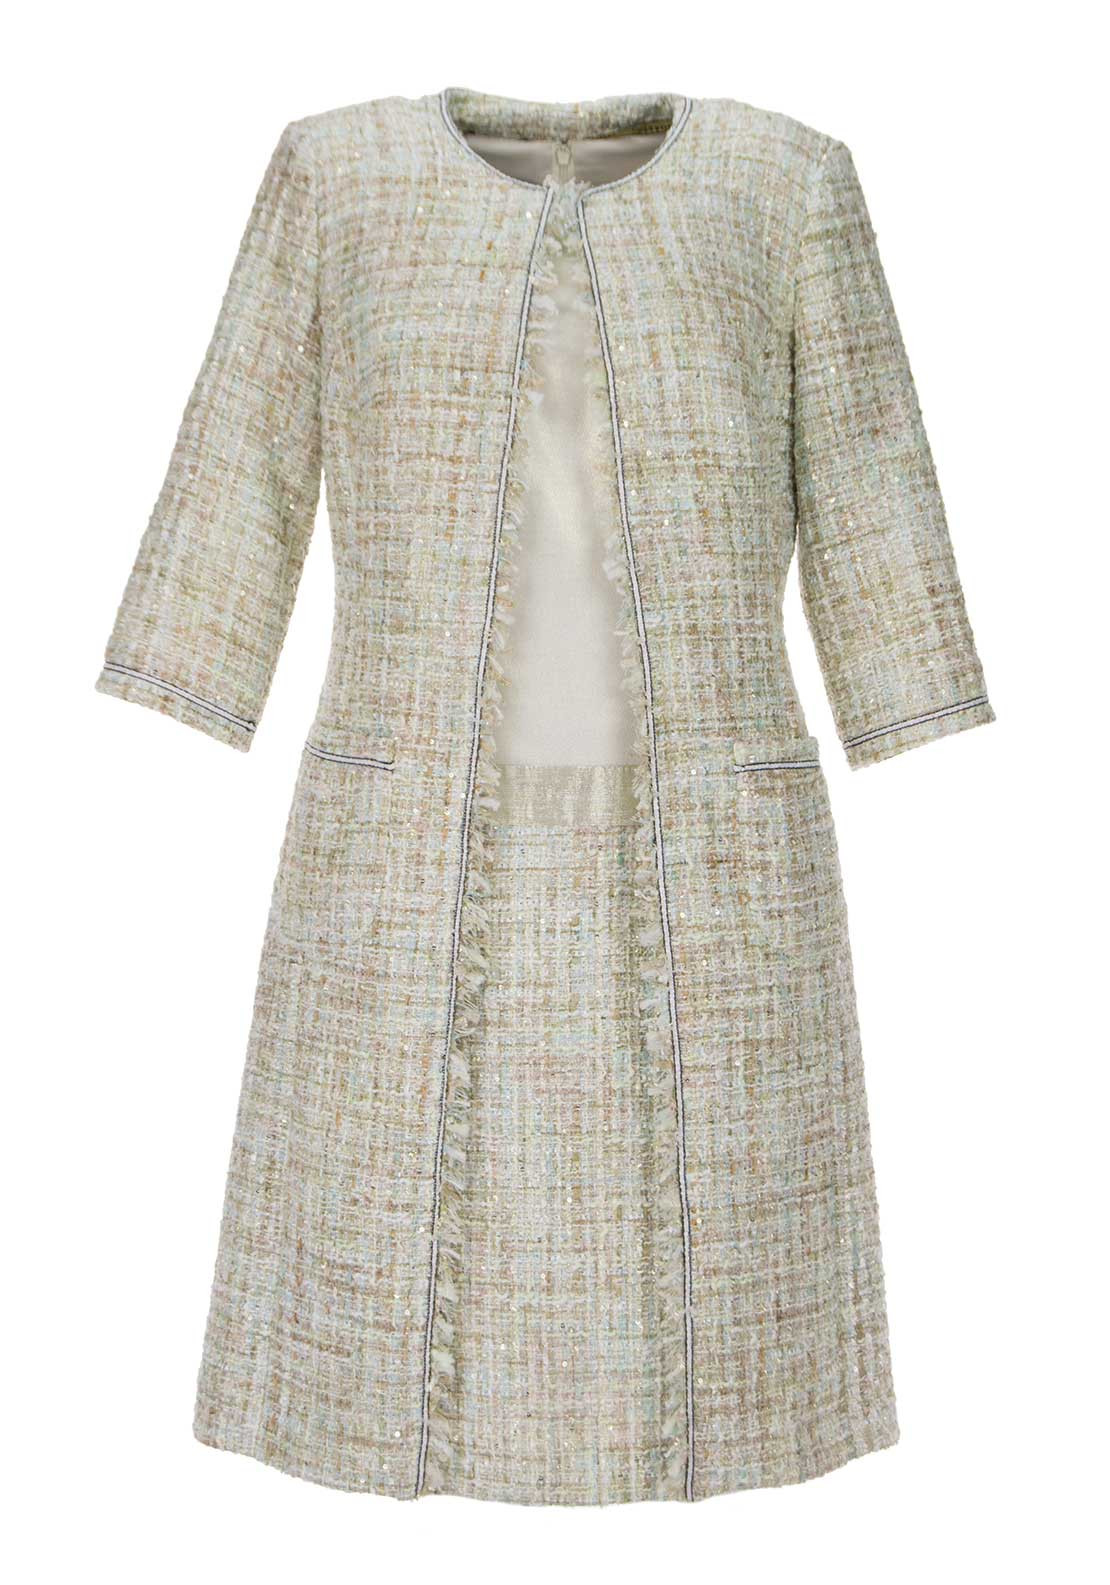 Linea Raffaelli Metallic Sheen Dress & Boucle Coat, Cream Multi